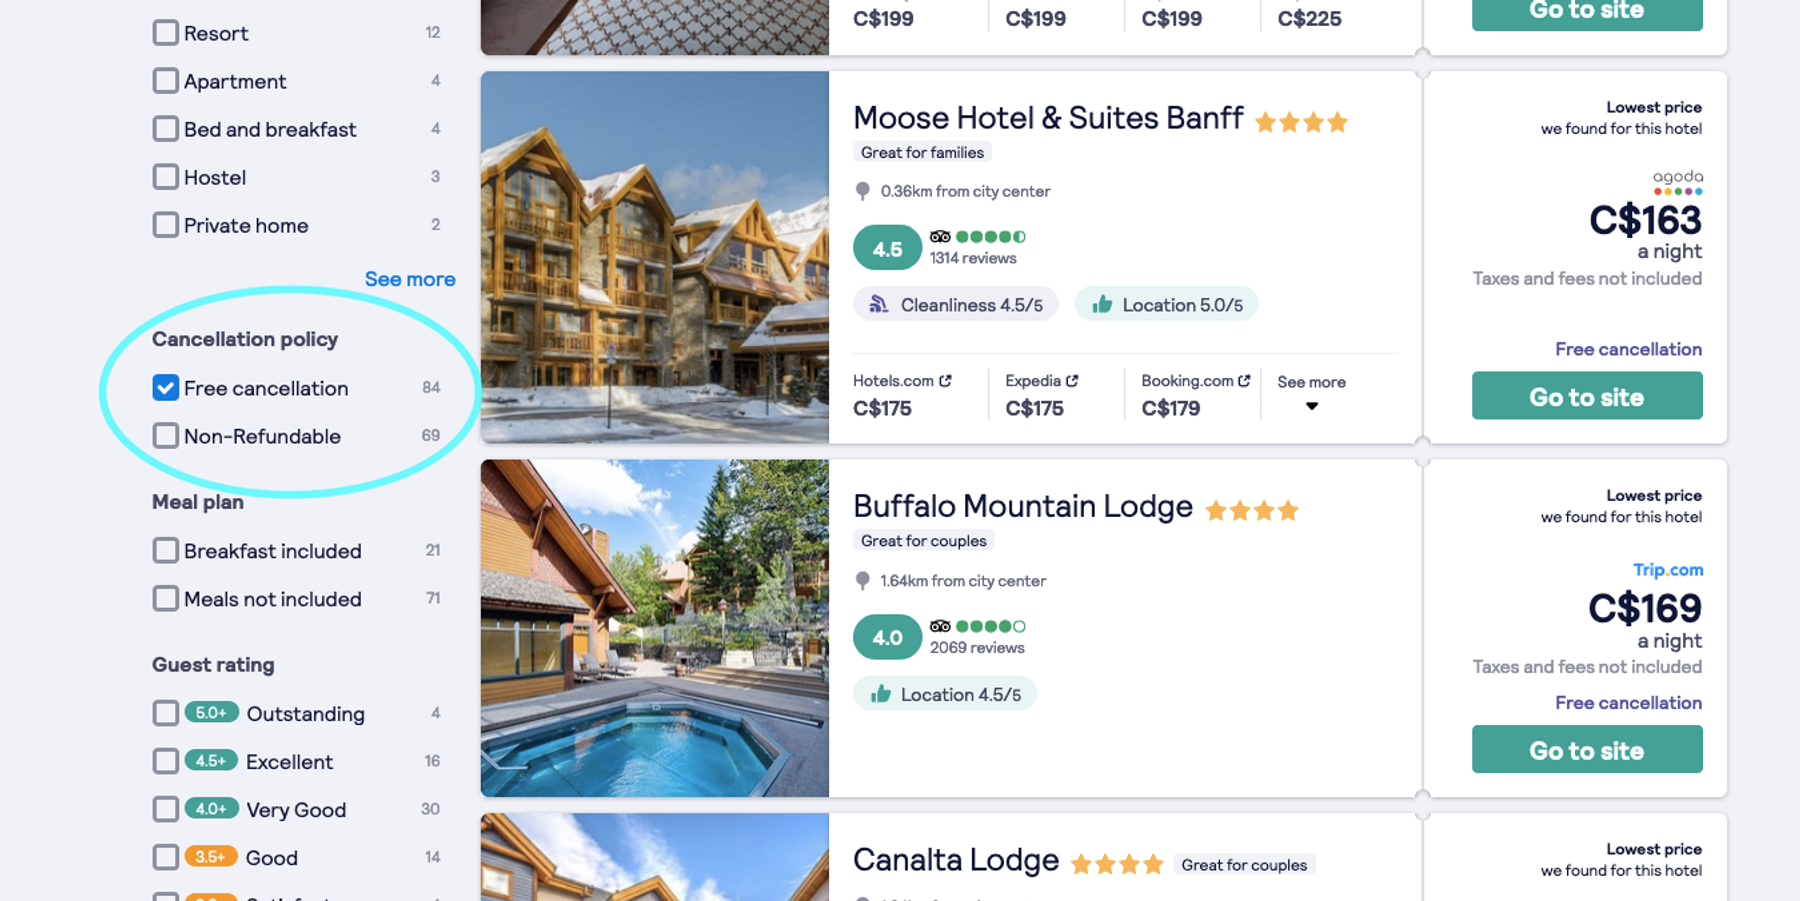 screenshot of skyscanner hotel booking page. Book hotels with free cancellation for a successful staycation this year.